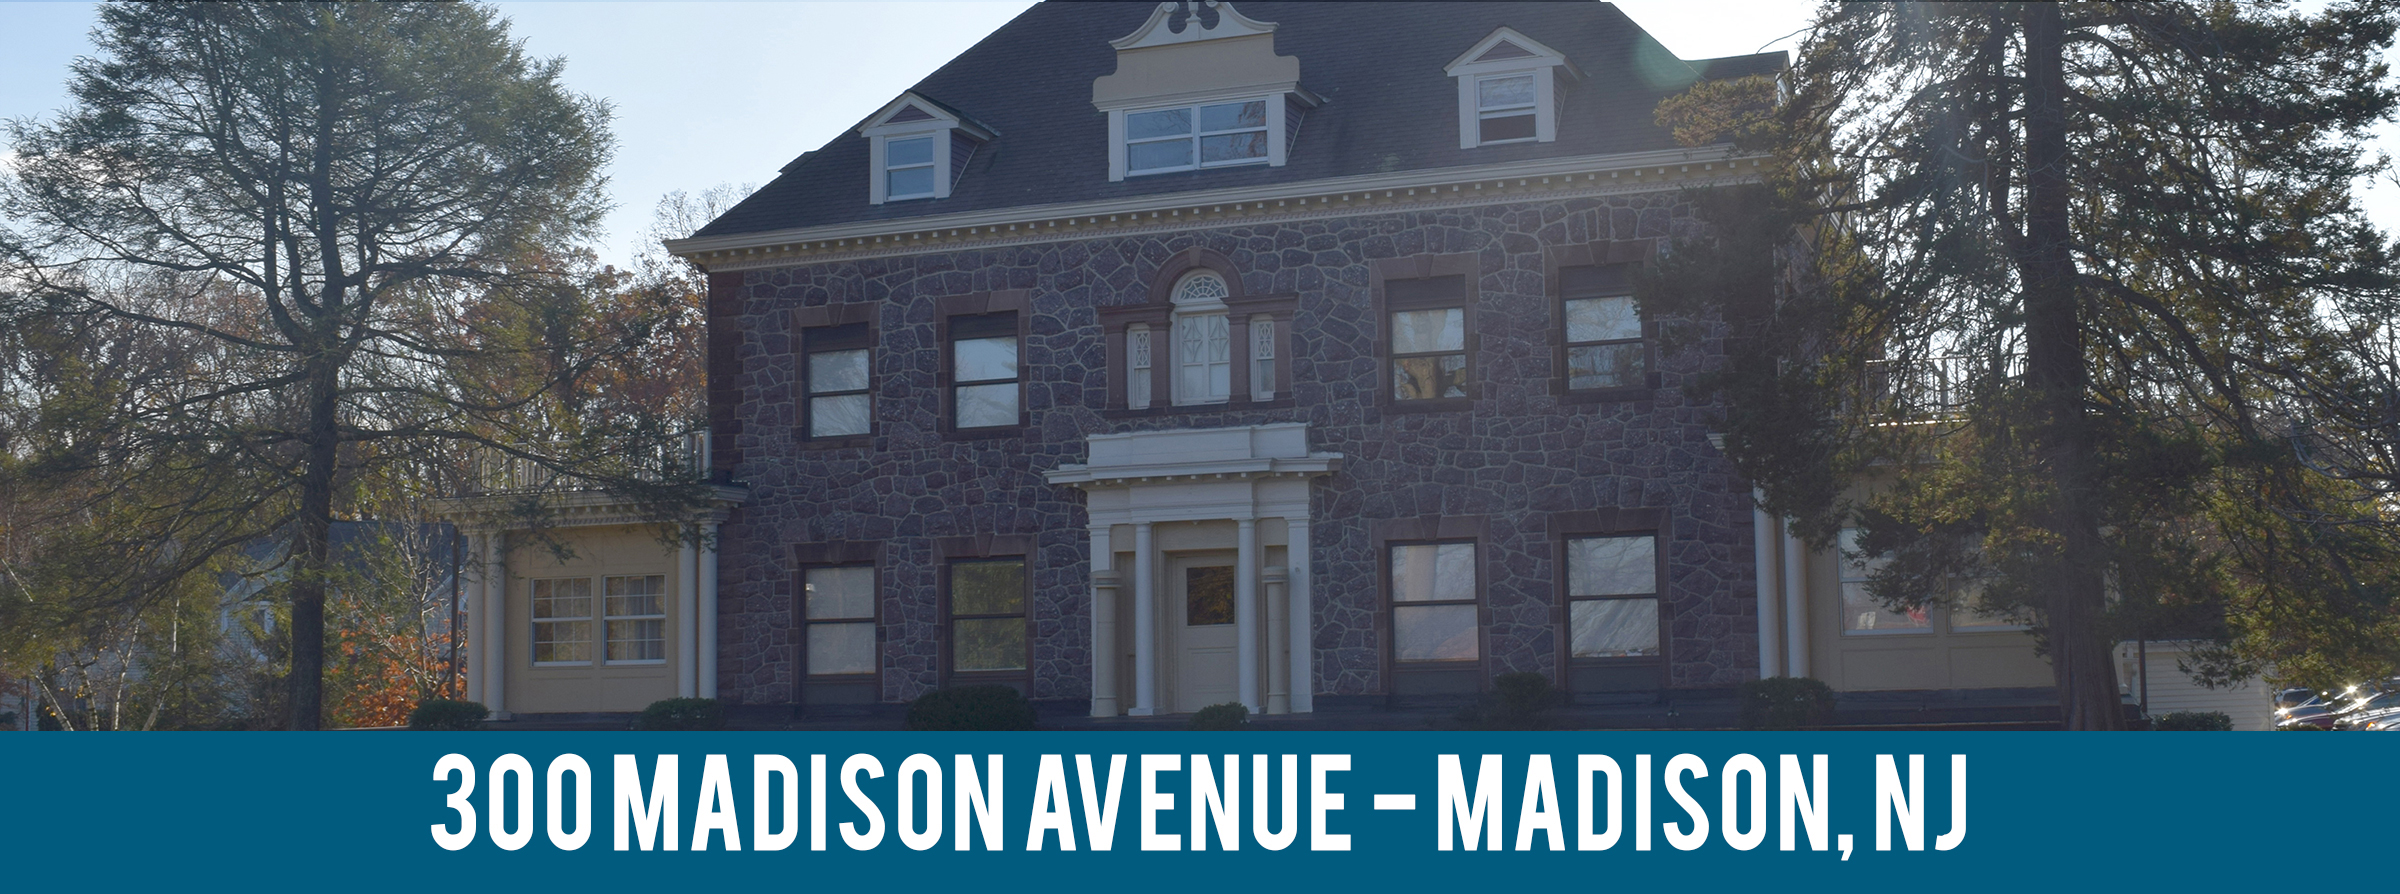 300 Madison Avenue - Madison, NJ